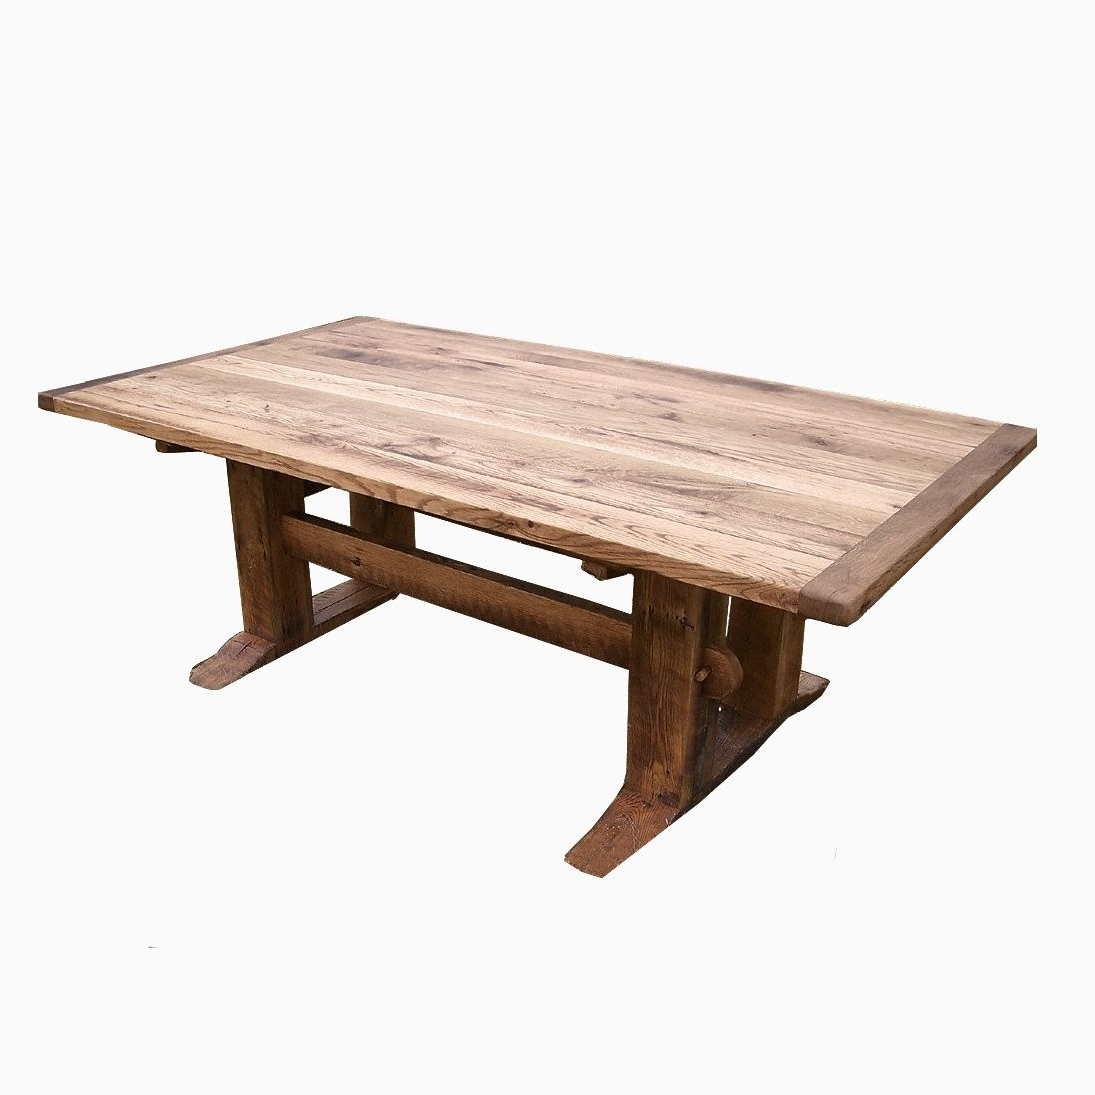 Buy A Hand Crafted Antique Oak Mission Style Trestle Table, Made To In Favorite Craftsman Rectangle Extension Dining Tables (View 2 of 25)